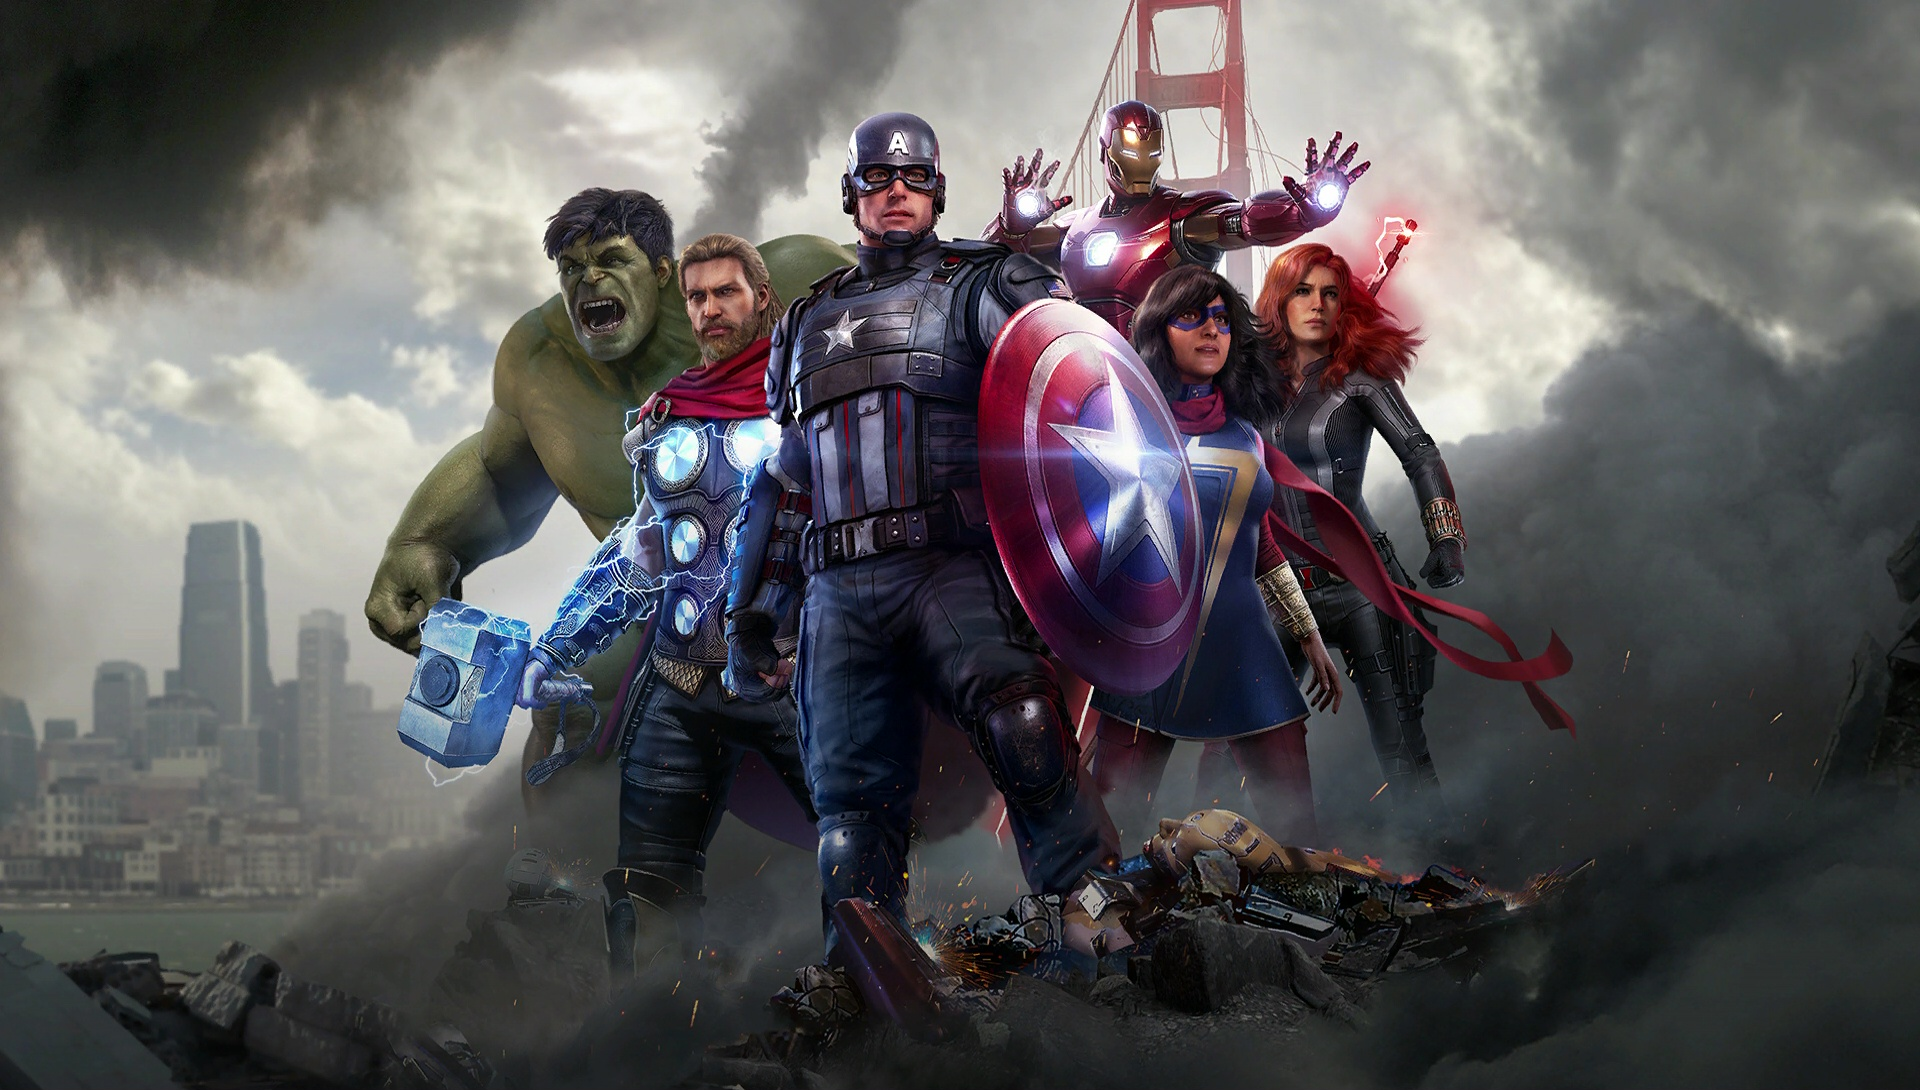 Unlock Thor Captain America Iron Man in Marvels Avengers